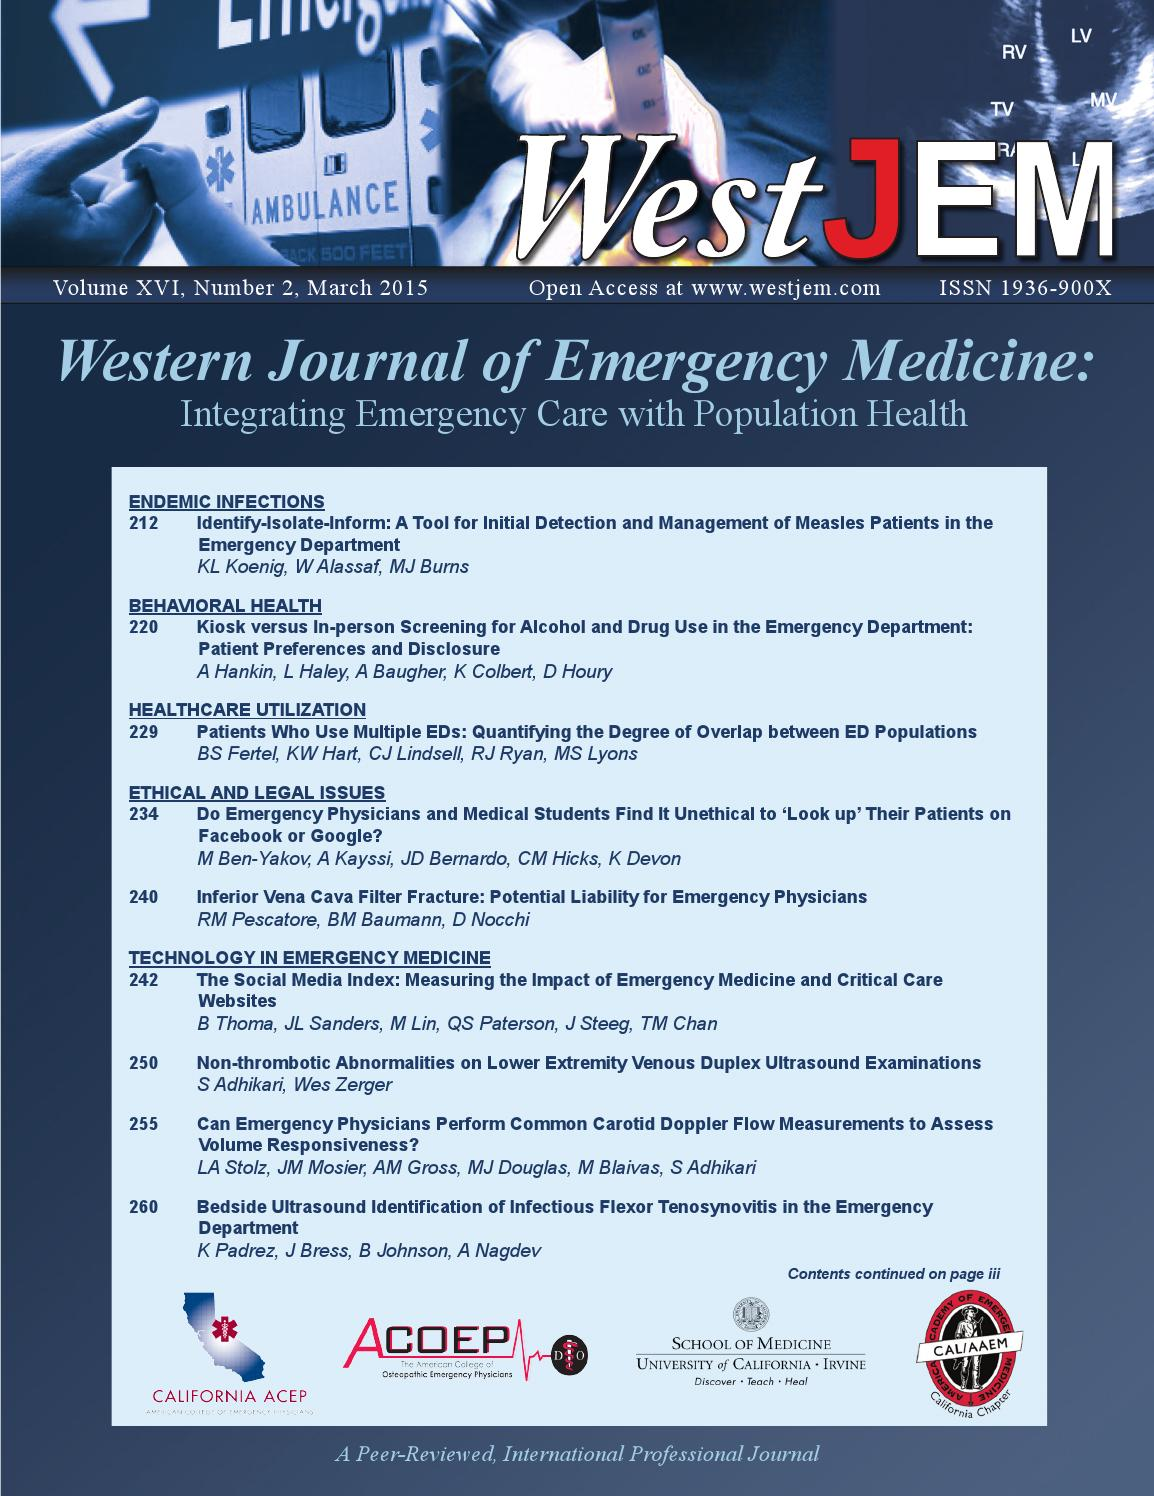 Volume 16 Issue 2 by Western Journal of Emergency Medicine